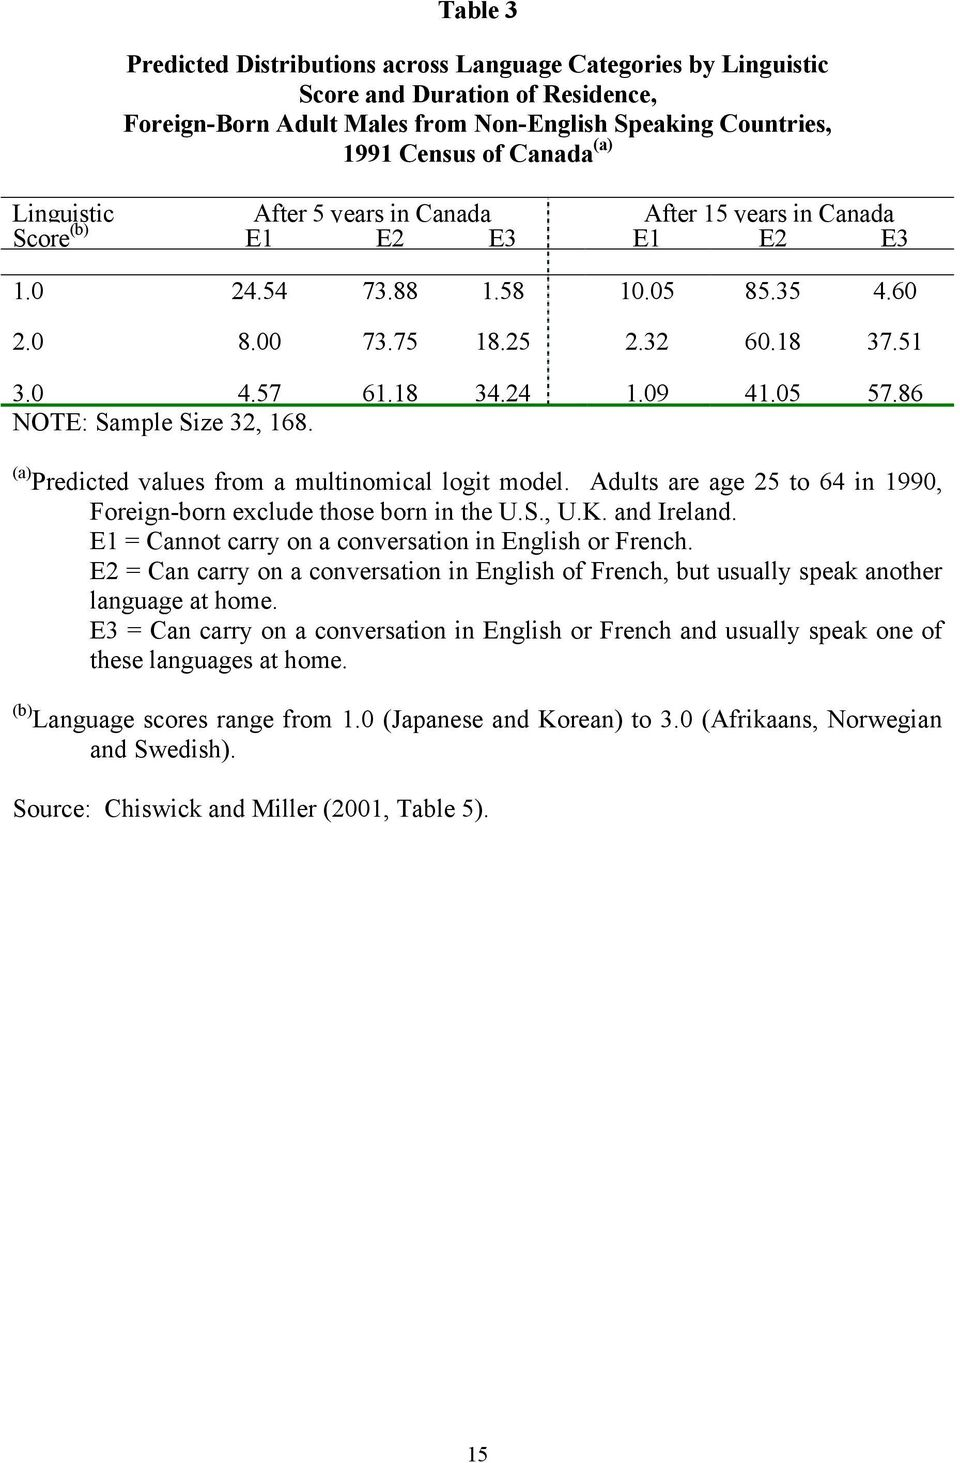 86 NOTE: Sample Size 32, 168. (a) Predicted values from a multinomical logit model. Adults are age 25 to 64 in 1990, Foreign-born exclude those born in the U.S., U.K. and Ireland.